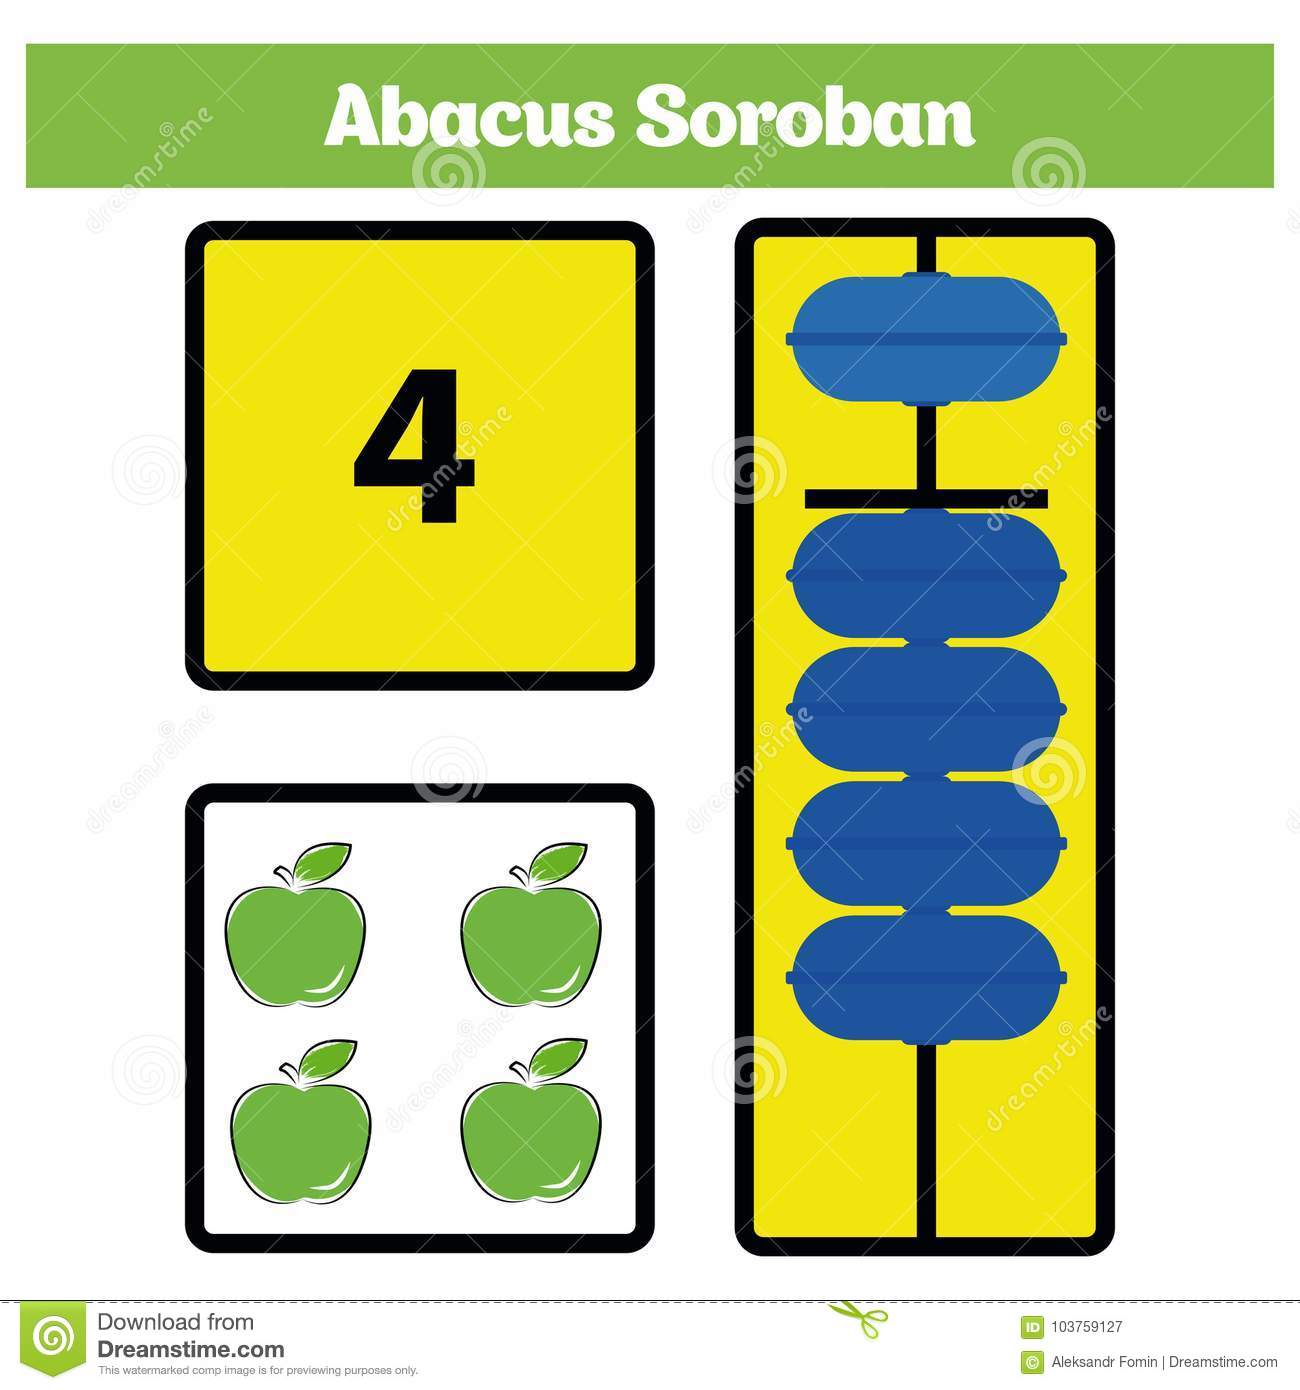 Abacus Soroban Kids Learn Numbers With Abacus Math Worksheet For Children Vector Illustration